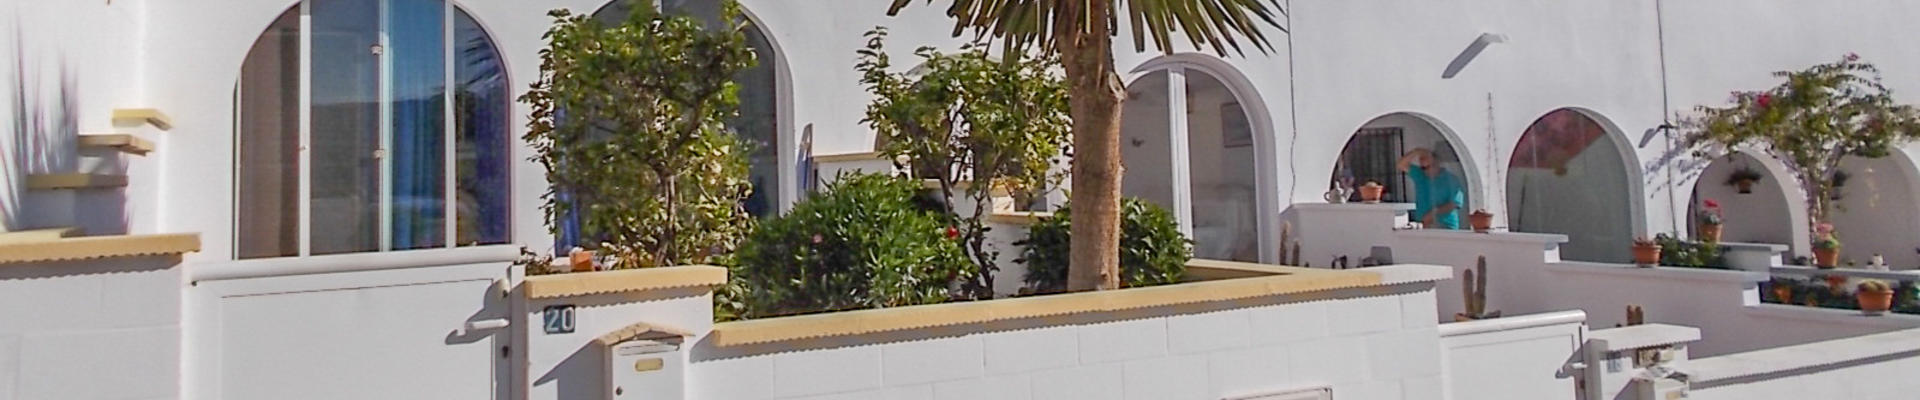 LV729: 3 Bedroom Townhouse for Sale